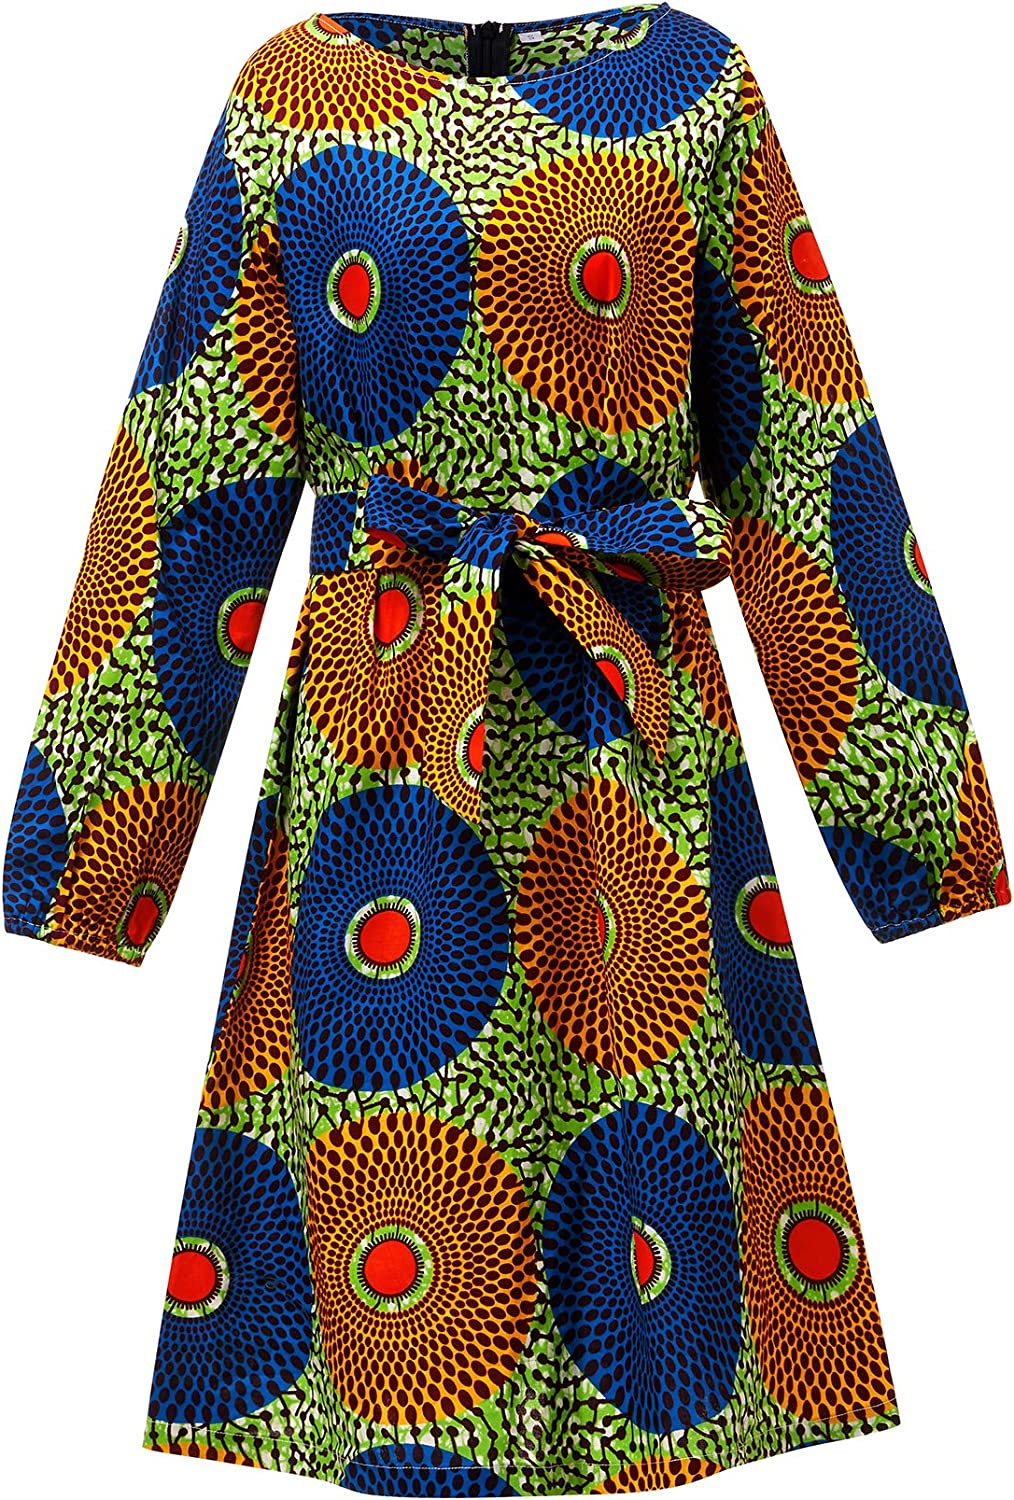 Aikaplus Women African Print Dress Traditional Dashiki Long Sleeves Maxi Cotton Dresses